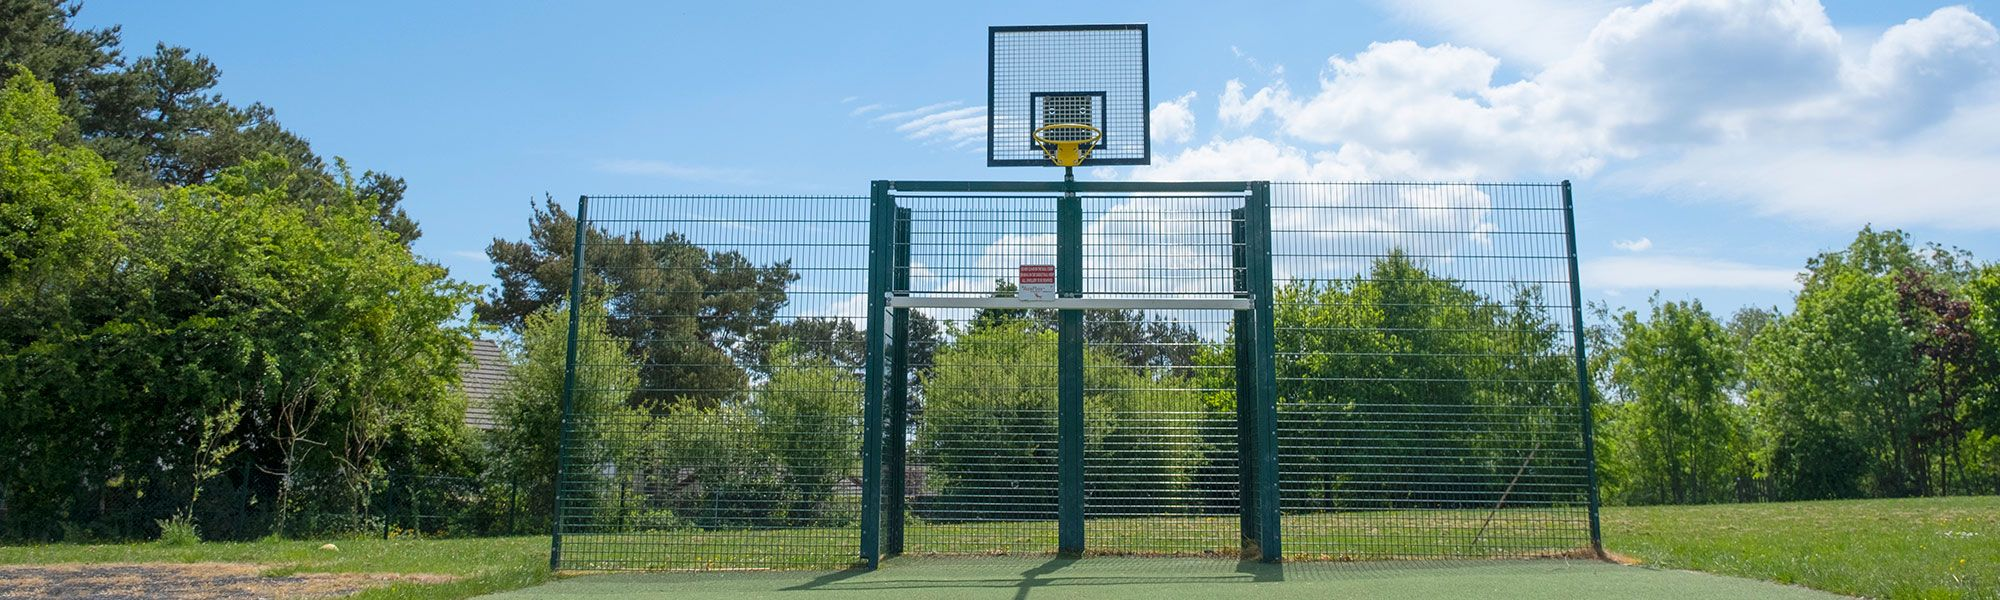 Basketball ring and court surface